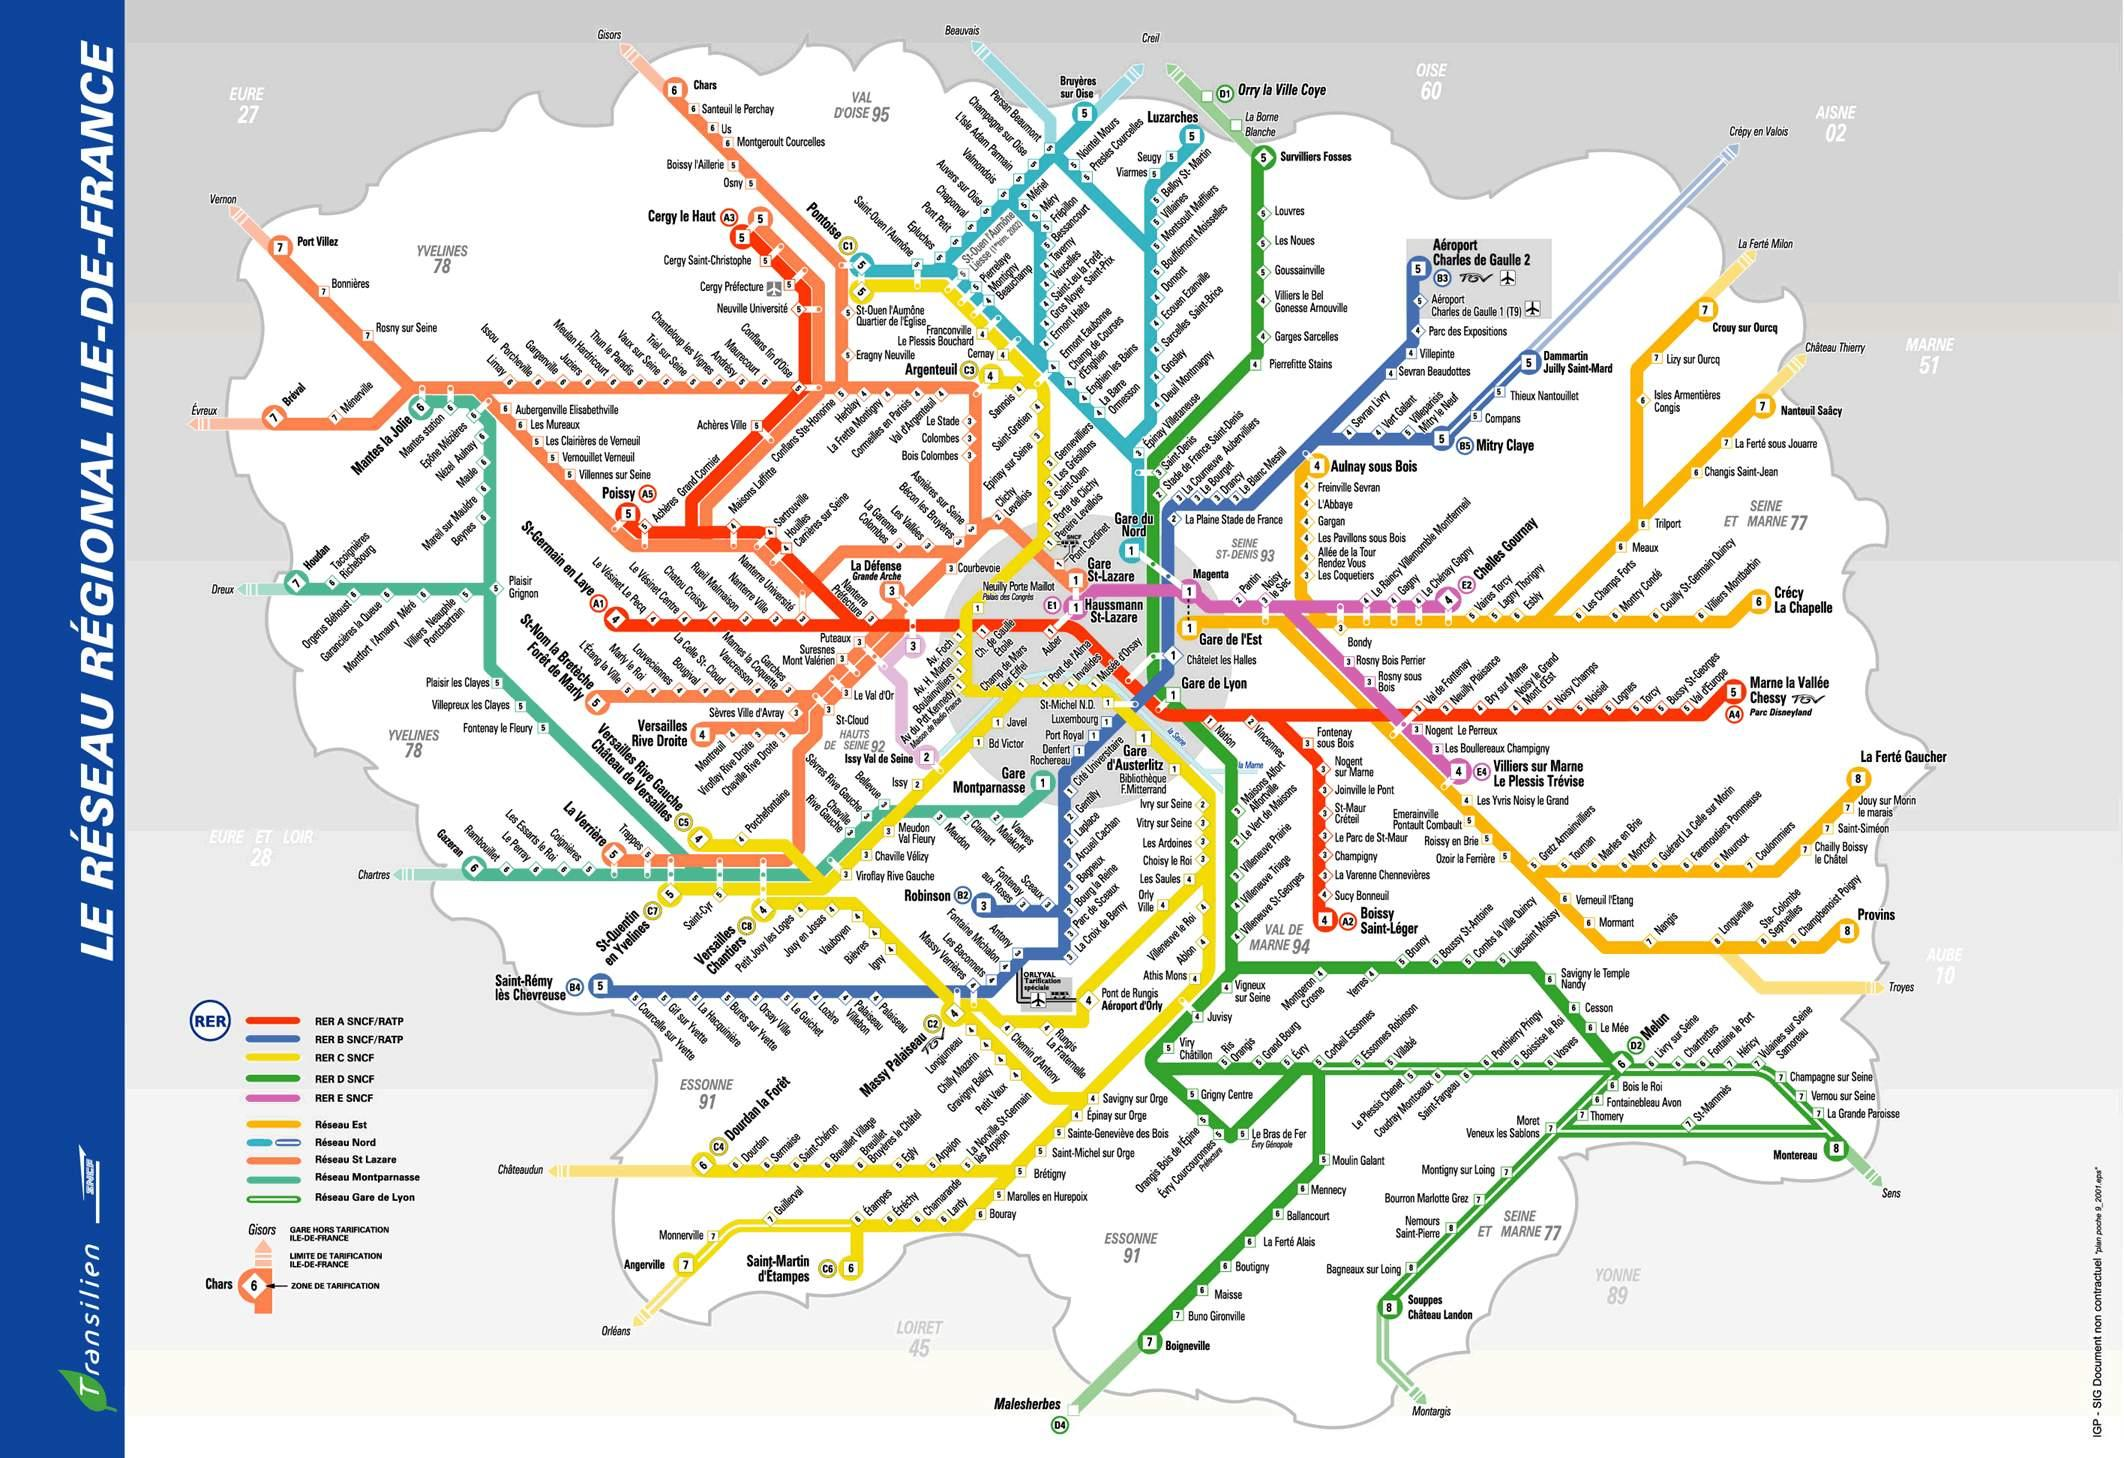 Paris metro and rer map - Rer metro map (Île-de-France - France)